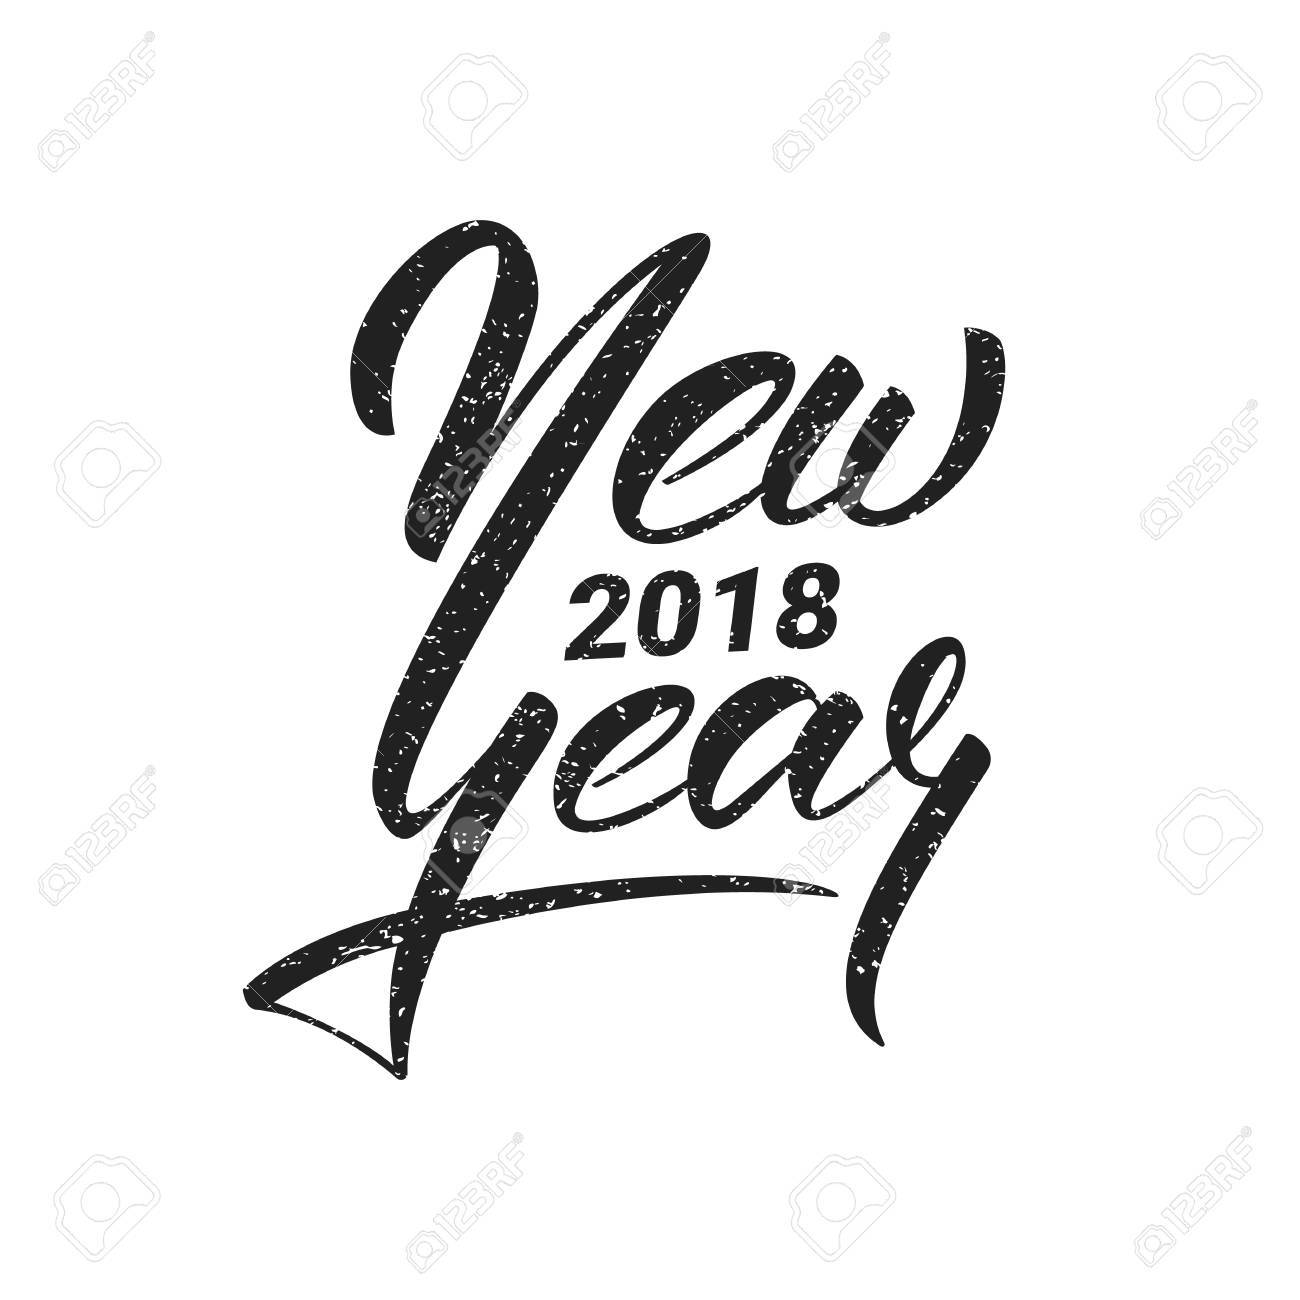 New Year. Happy New Year 2018 Hand Lettering With Grunge Retro Texture.  Hand Drawn